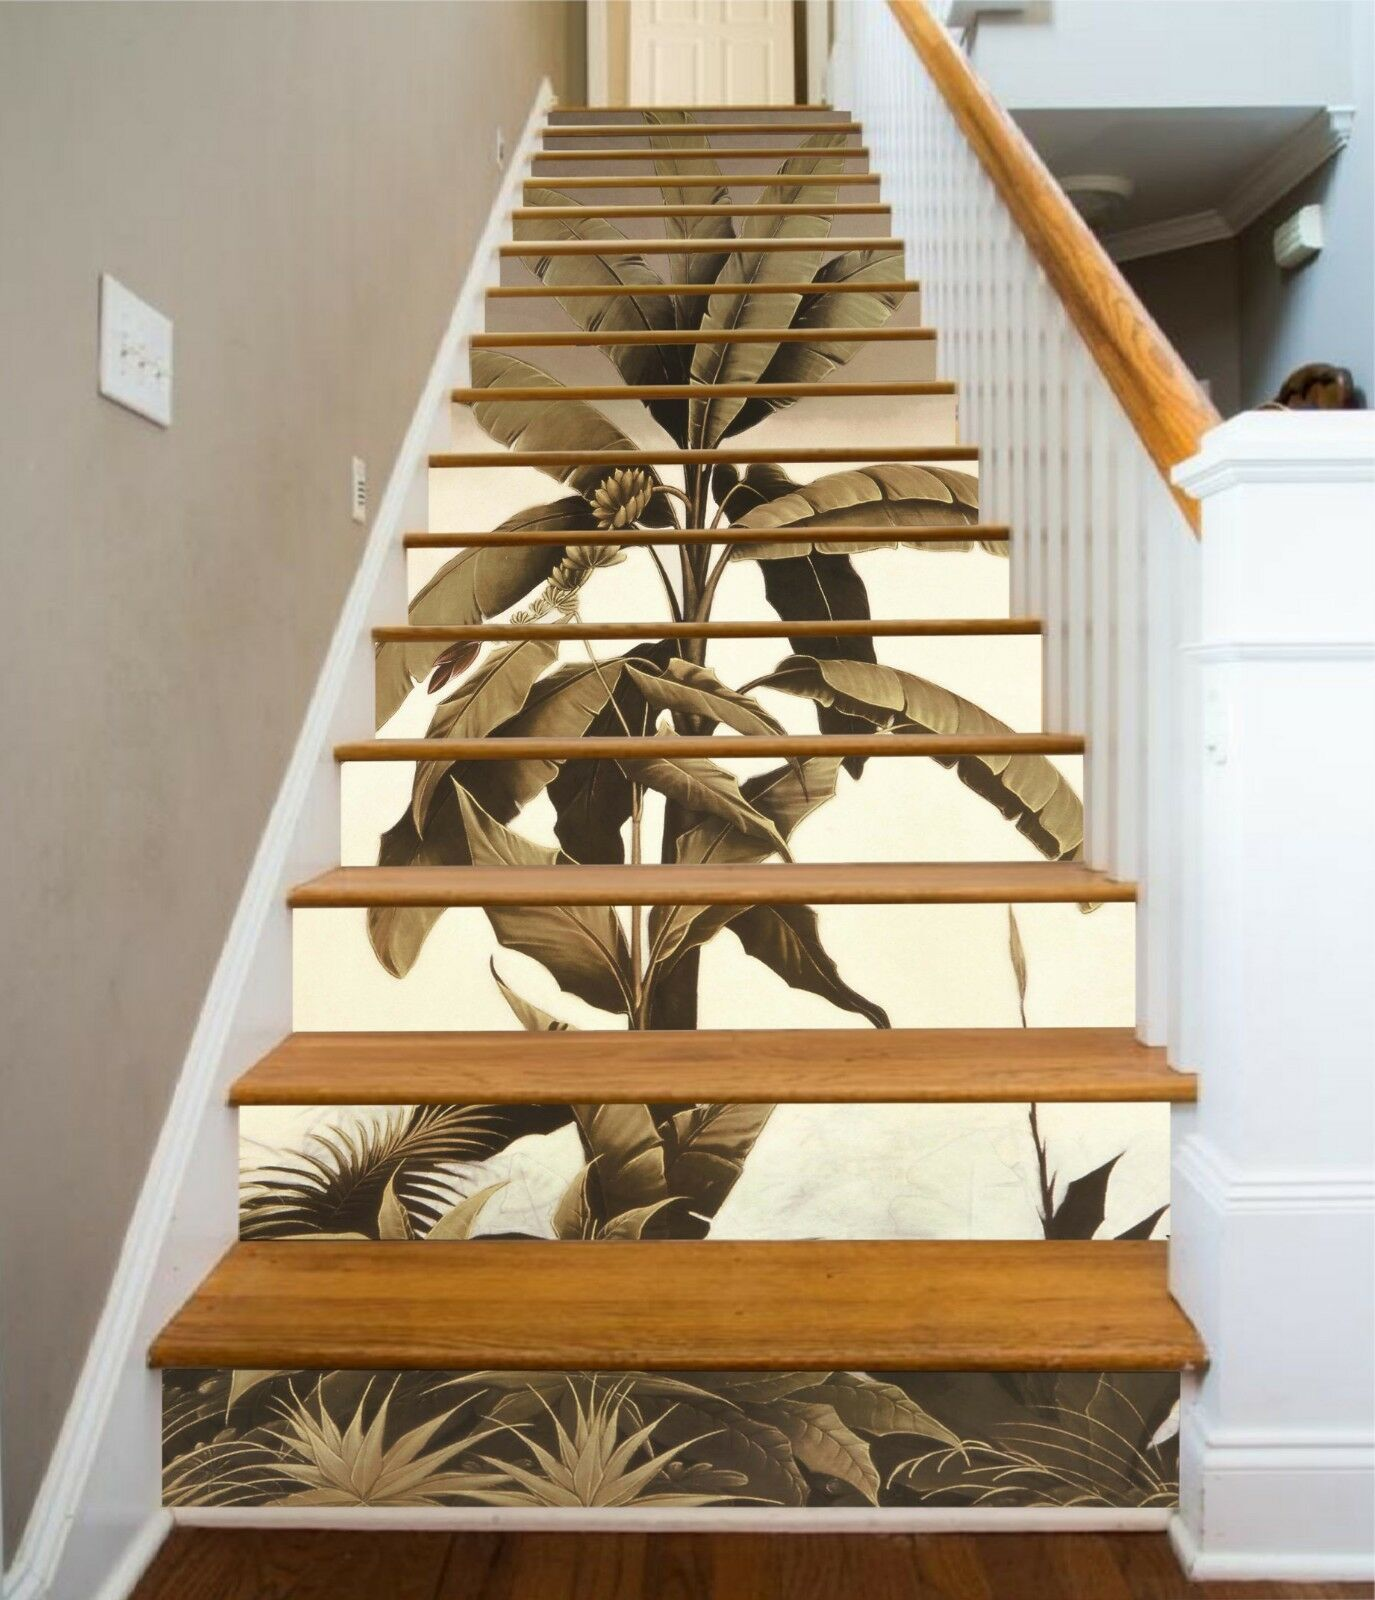 3D Leaves Pattern Stair Risers Decoration Photo Mural Vinyl Decal Wallpaper US